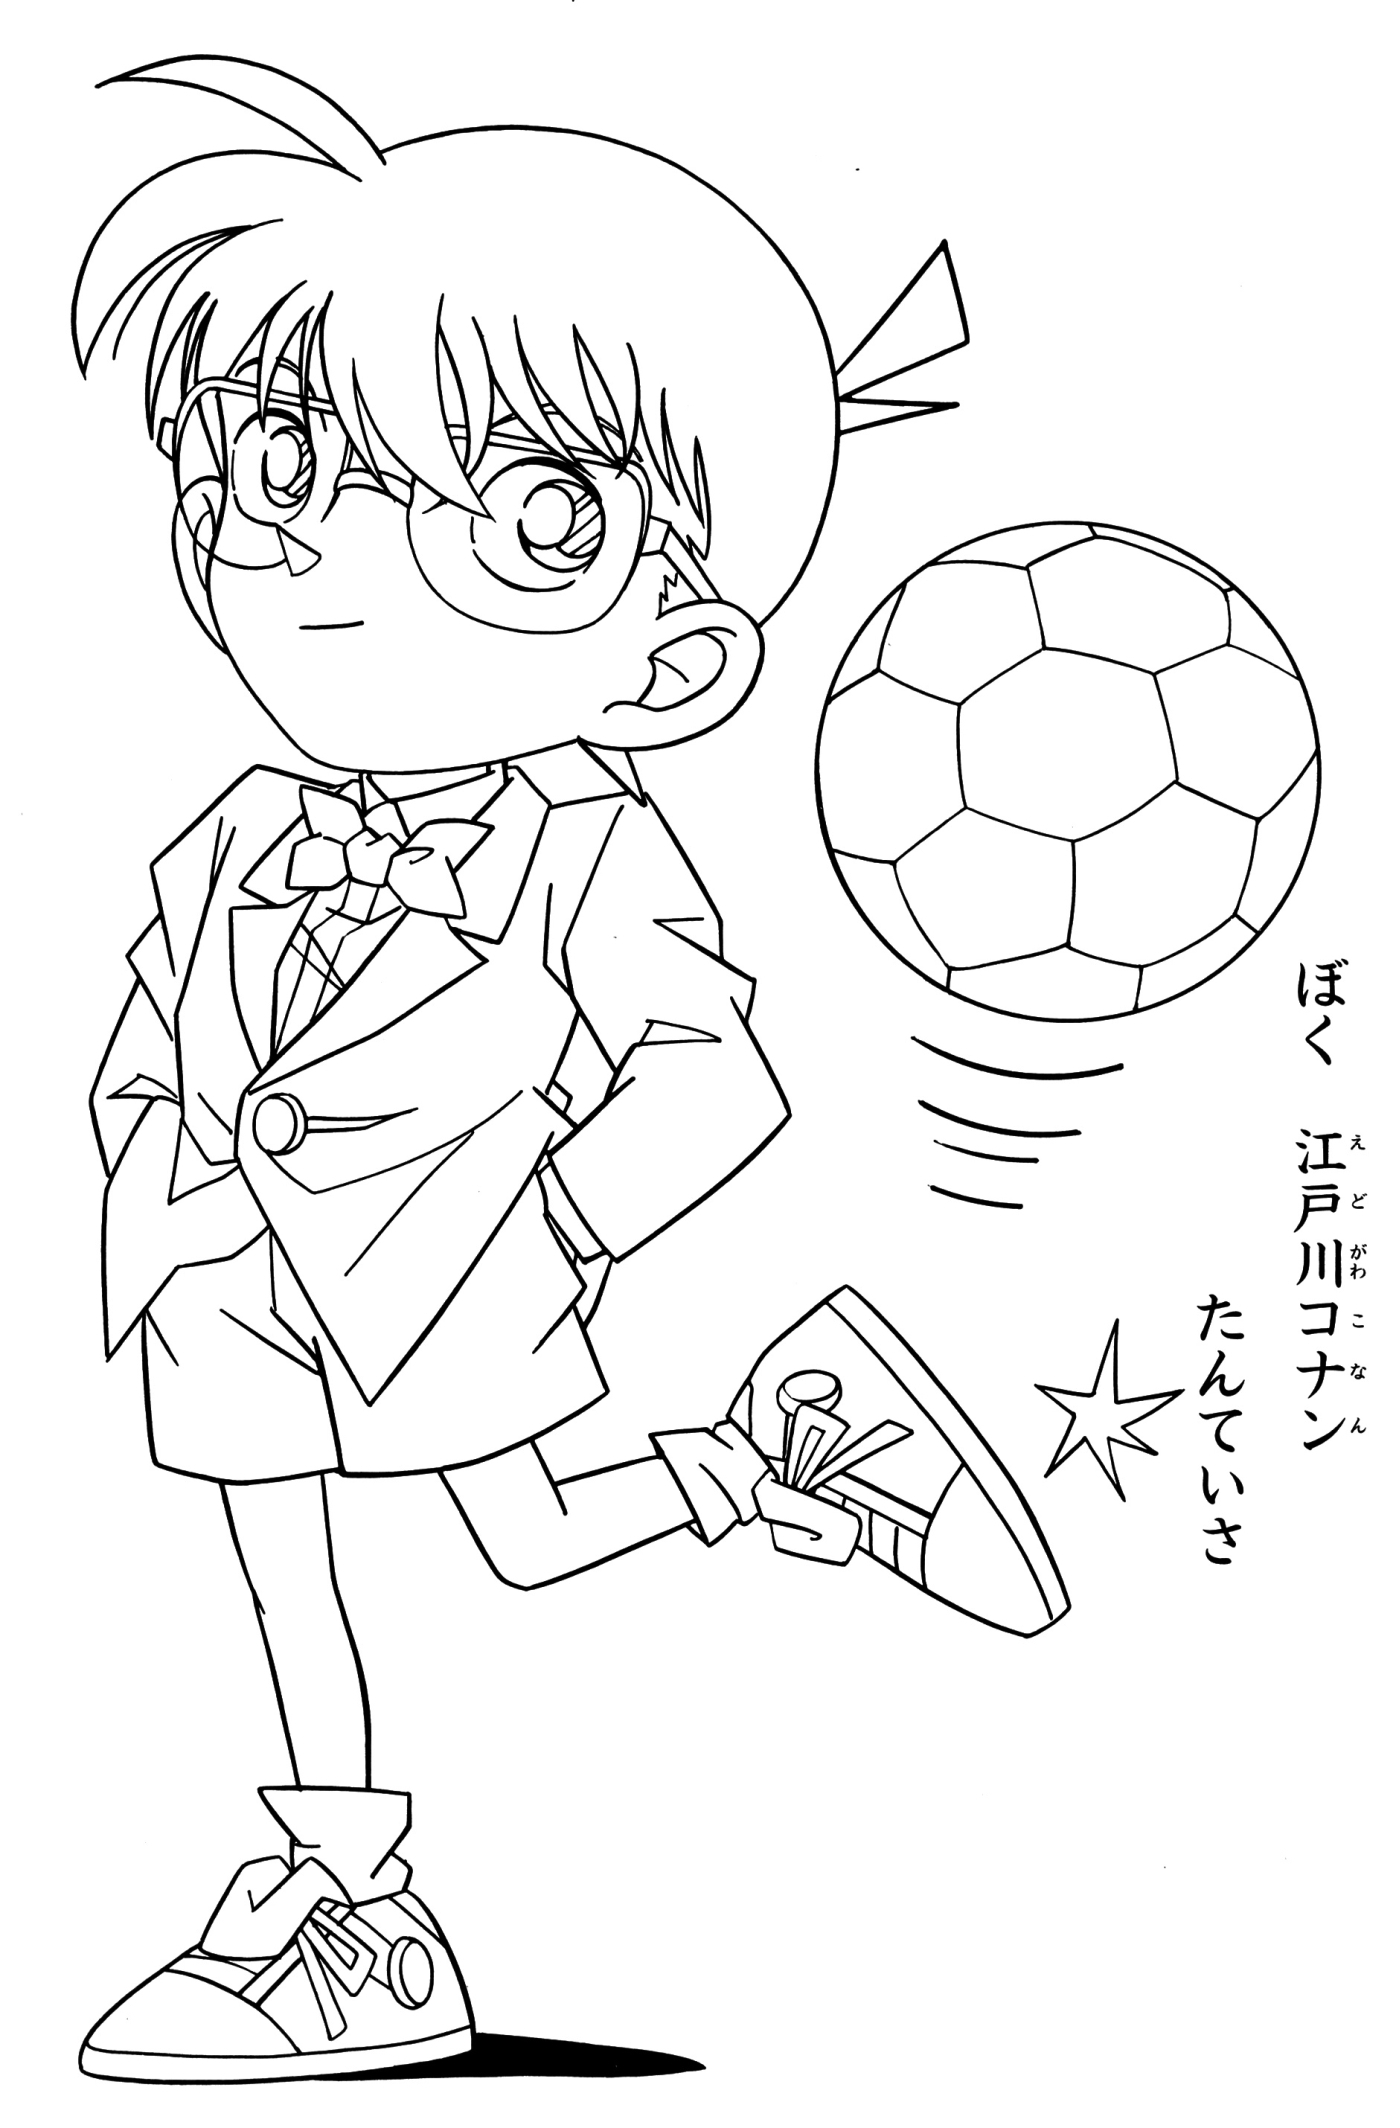 Peacock Coloring Pages - Detective Conan Coloring Book Sketch Coloring Page